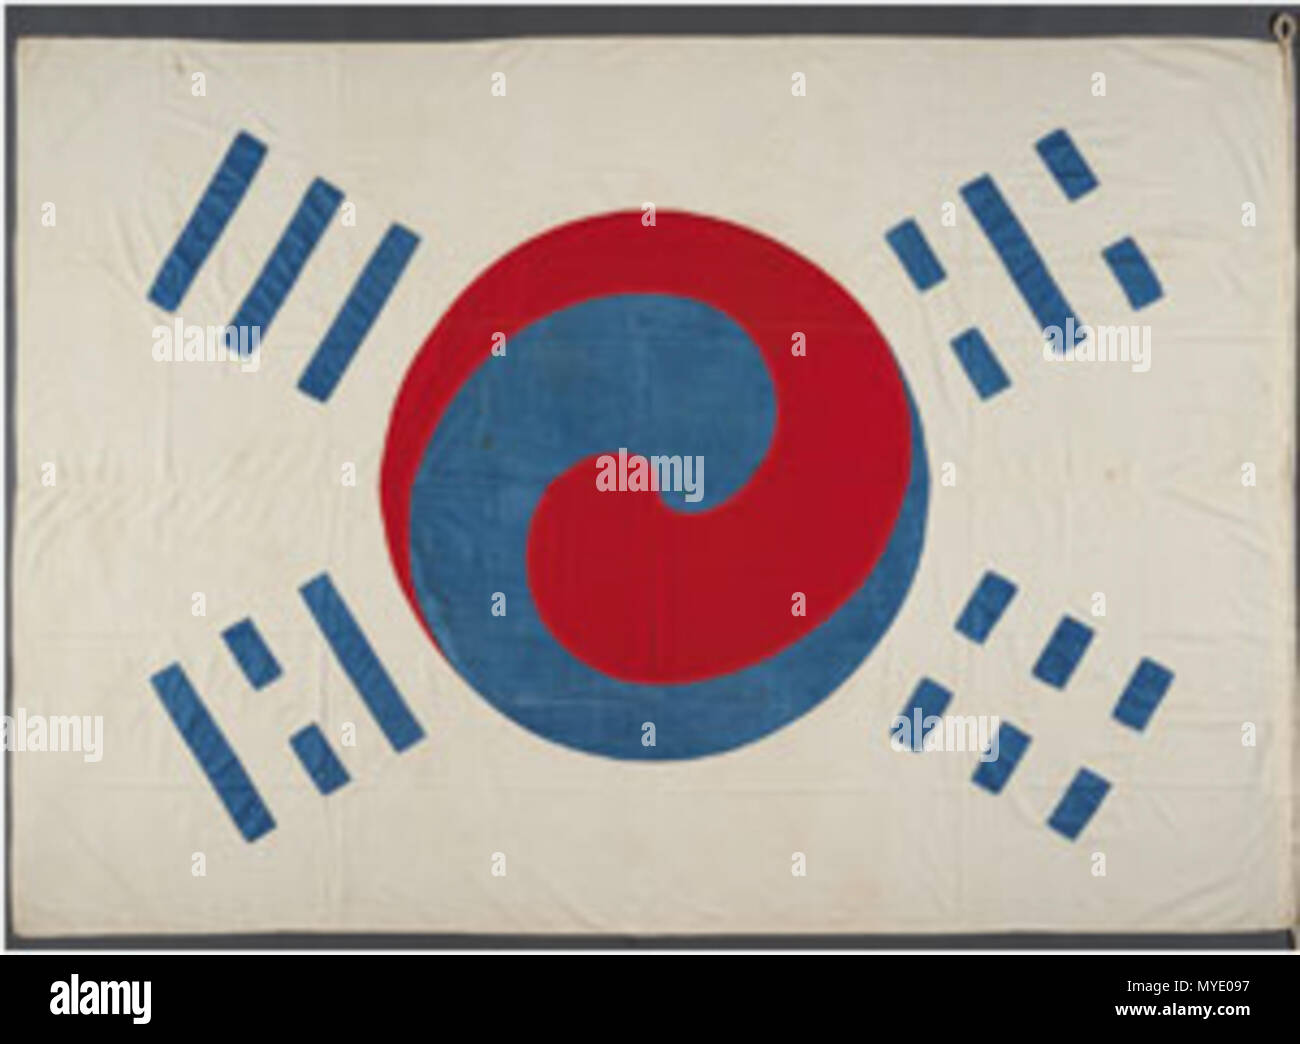 english left right flipped flag of the joseon dynasty 한국어 조선